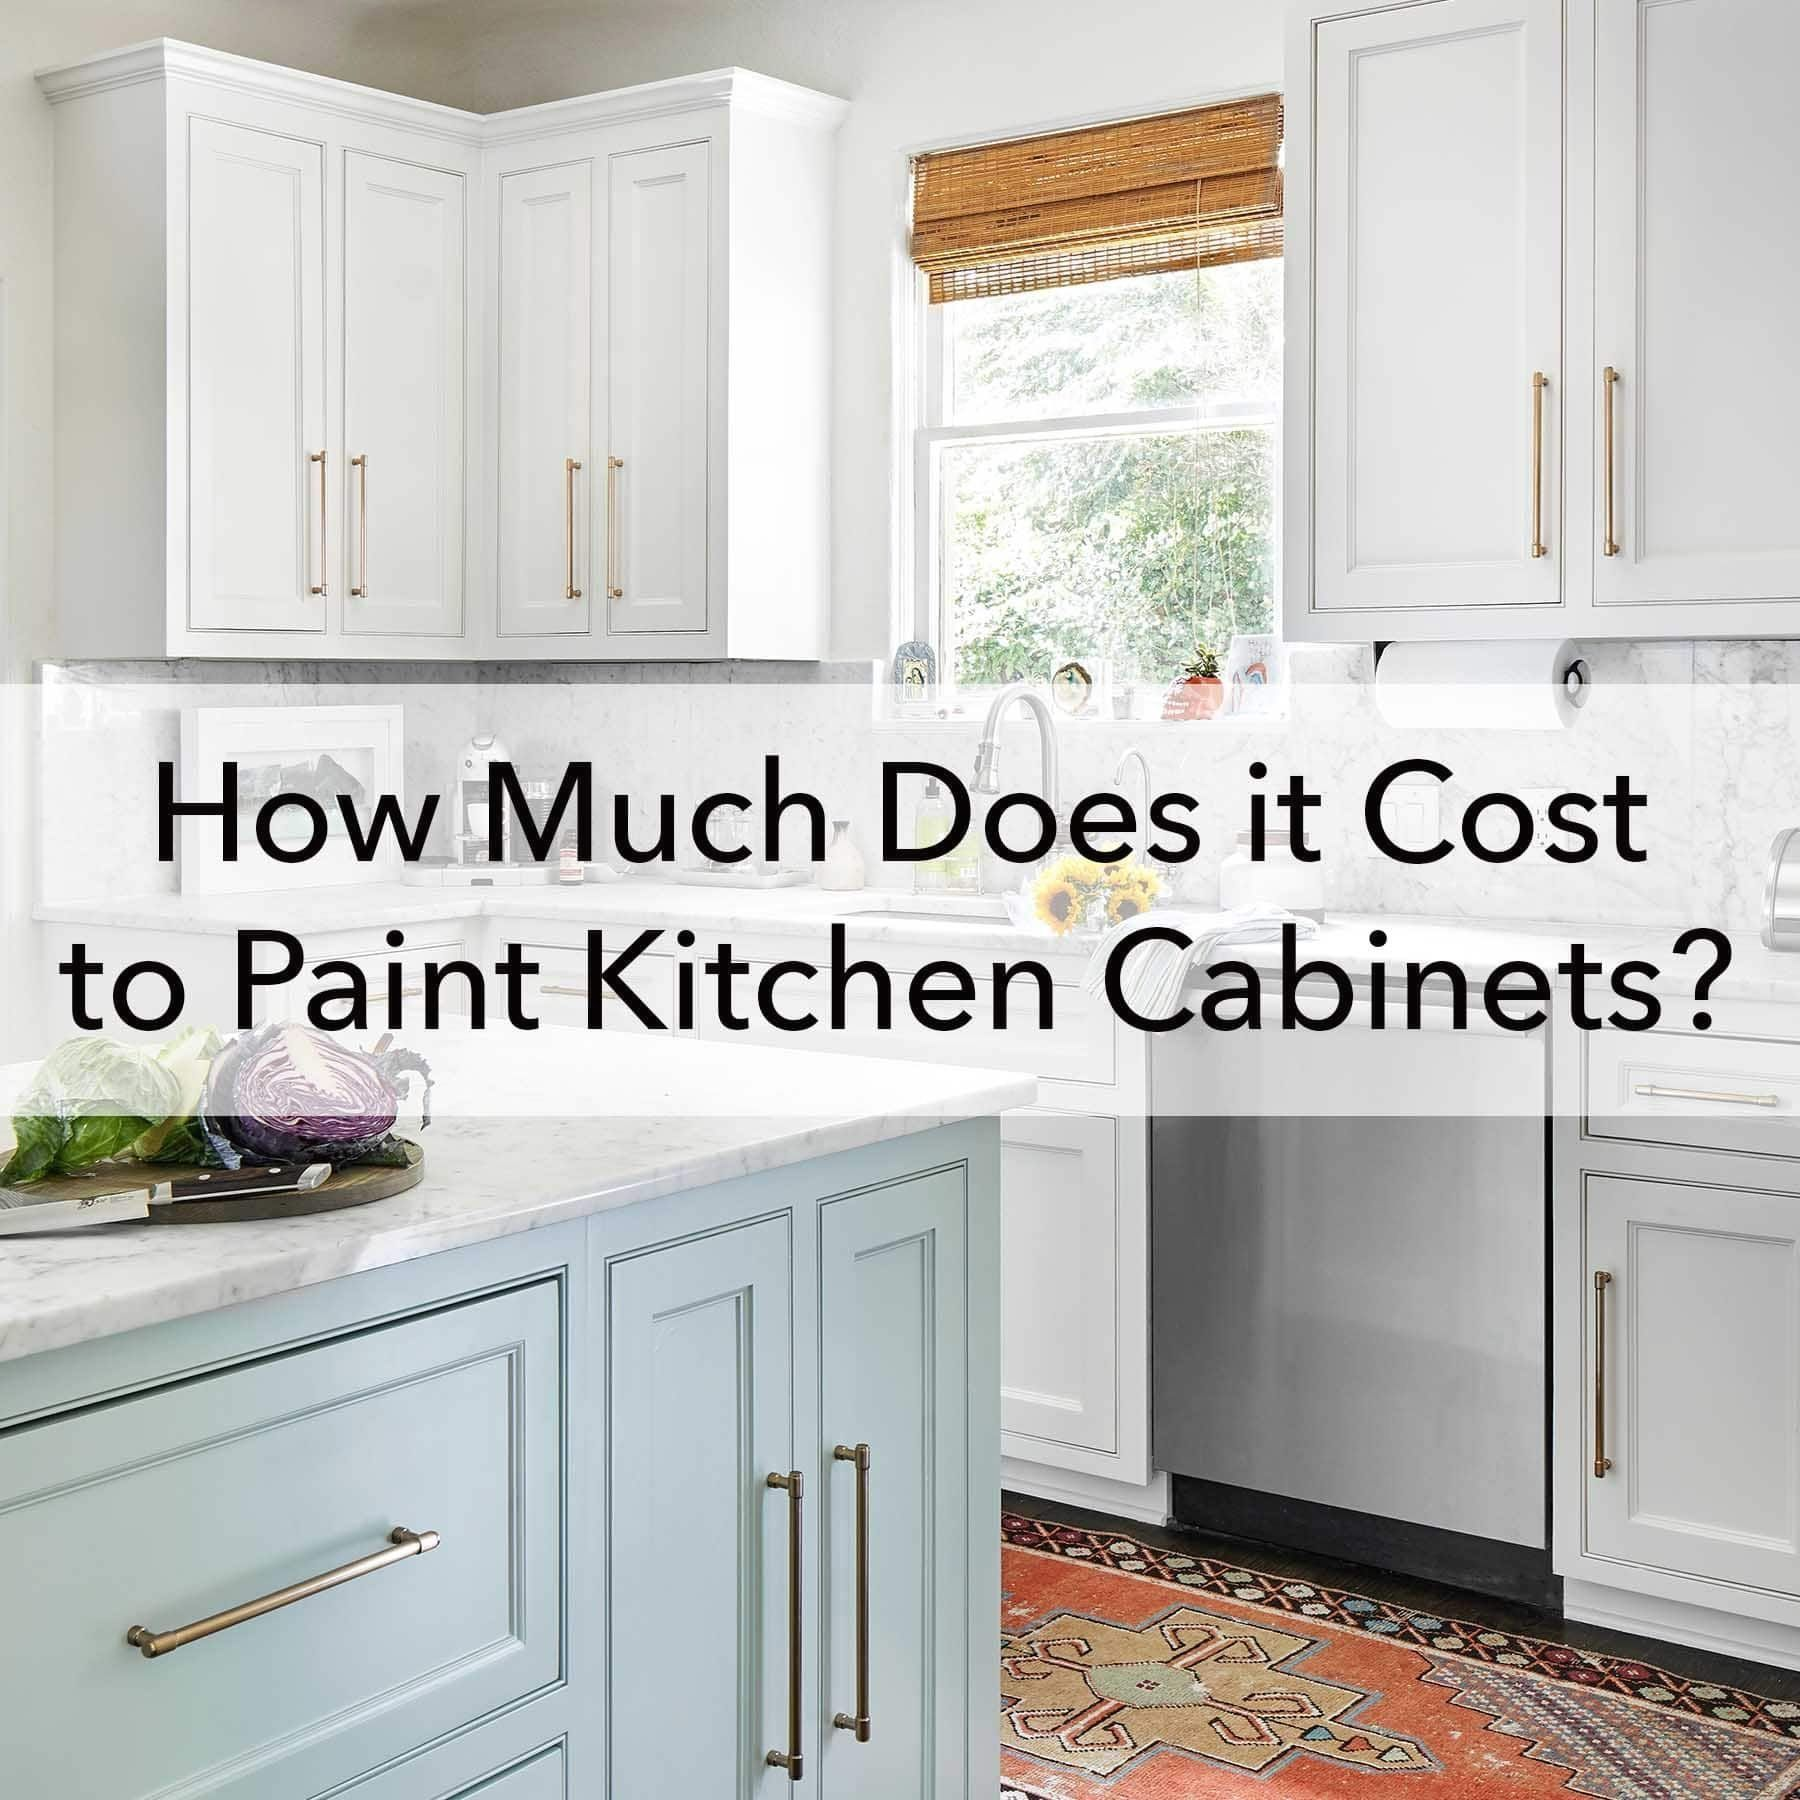 How Much Does It Cost To Paint Kitchen Cabinets 1000 In 2020 Repainting Kitchen Cabinets Cost Of Kitchen Cabinets Painting Kitchen Cabinets